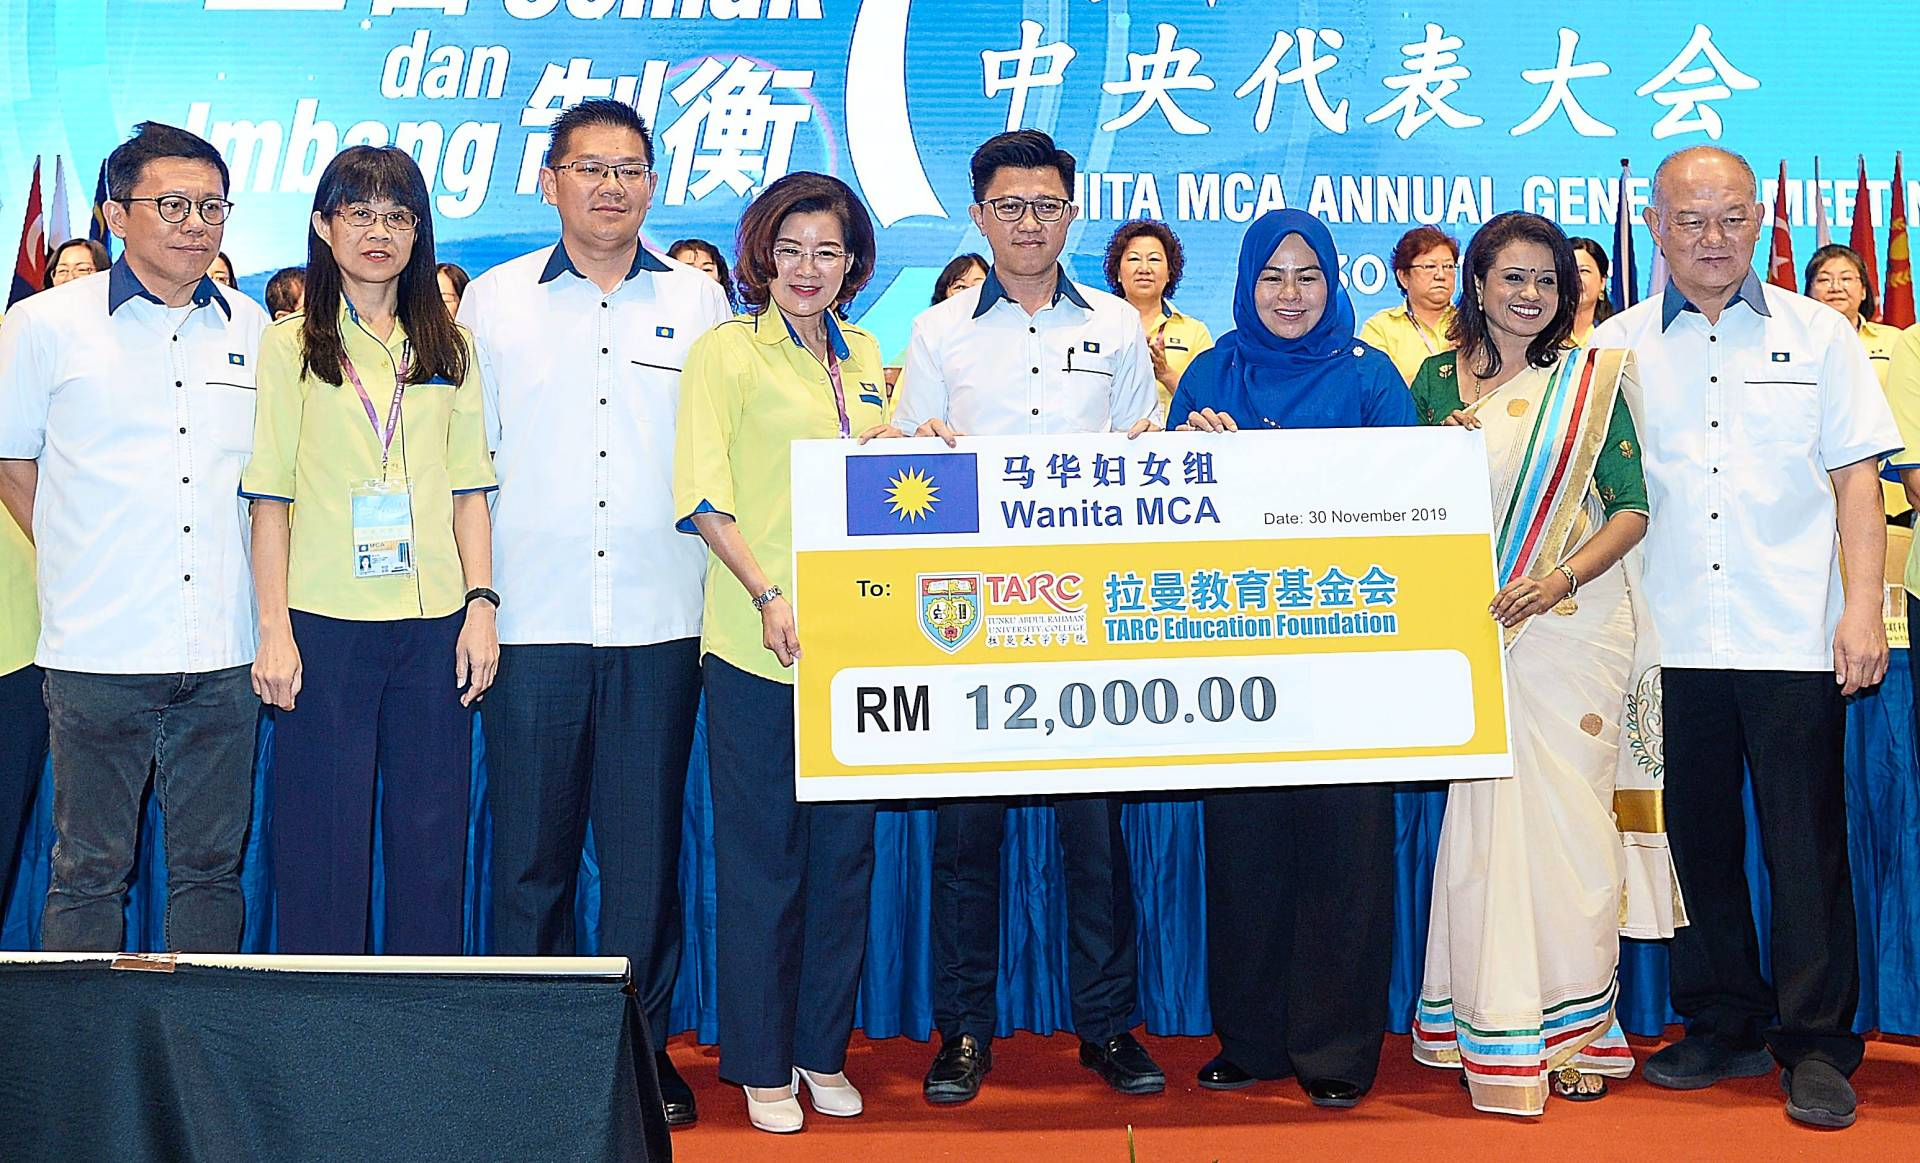 All smiles: Heng (fourth left) presenting a mock cheque of RM12,000 collected from Wanita's pre-AGM dinner and fundraiser to Chong (fifth left). Looking on are Wanita Umno chief Datuk Dr Noraini Ahmad, Wanita MIC chief J. Usha Nandhini and other guests during the 44th Wanita MCA annual general meeting at Wisma MCA in Kuala Lumpur.